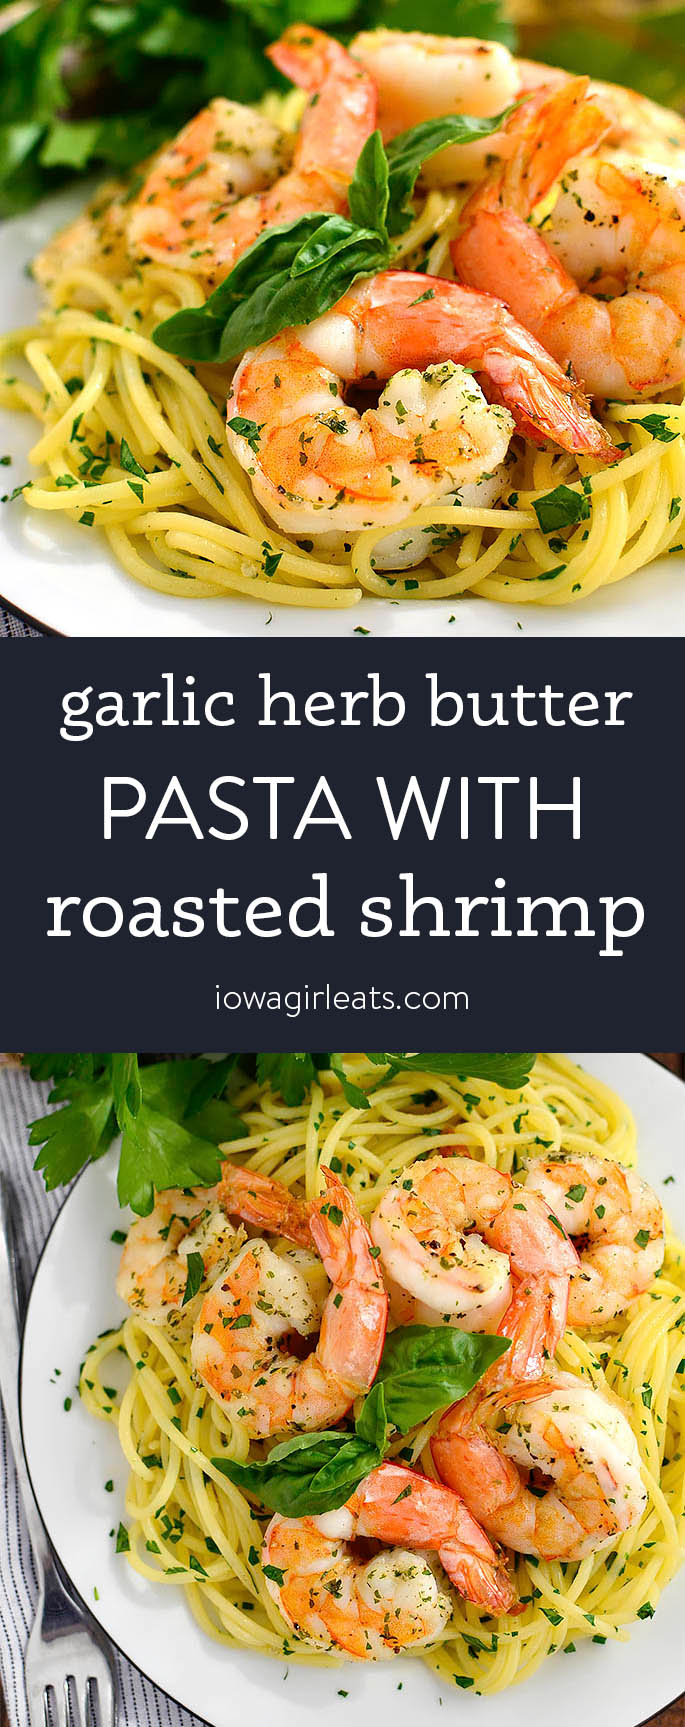 Photo collage of garlic herb butter pasta with roasted shrimp